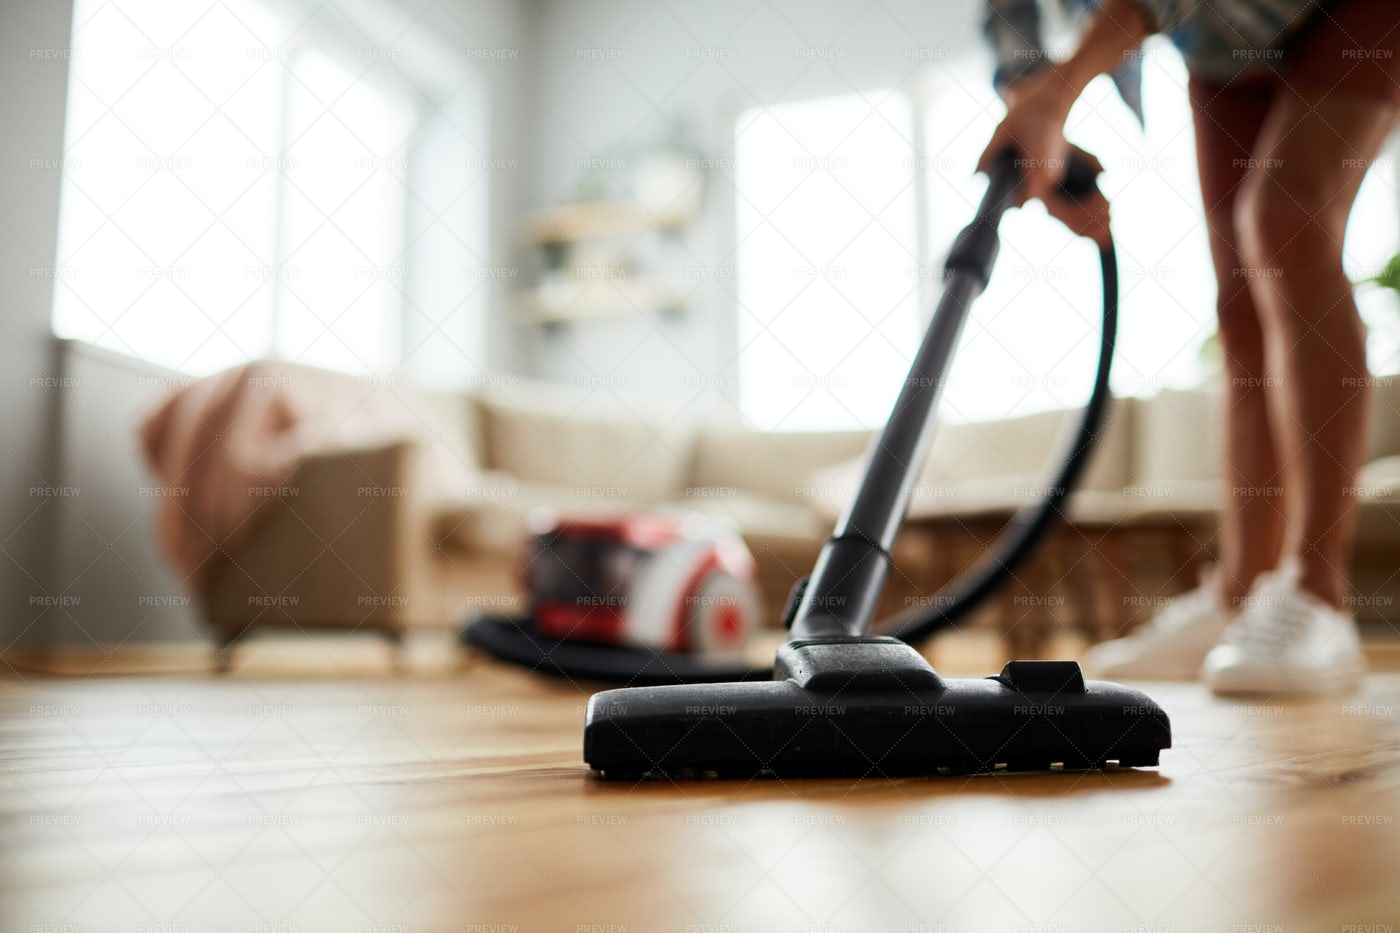 Vacuuming Floor At Home: Stock Photos